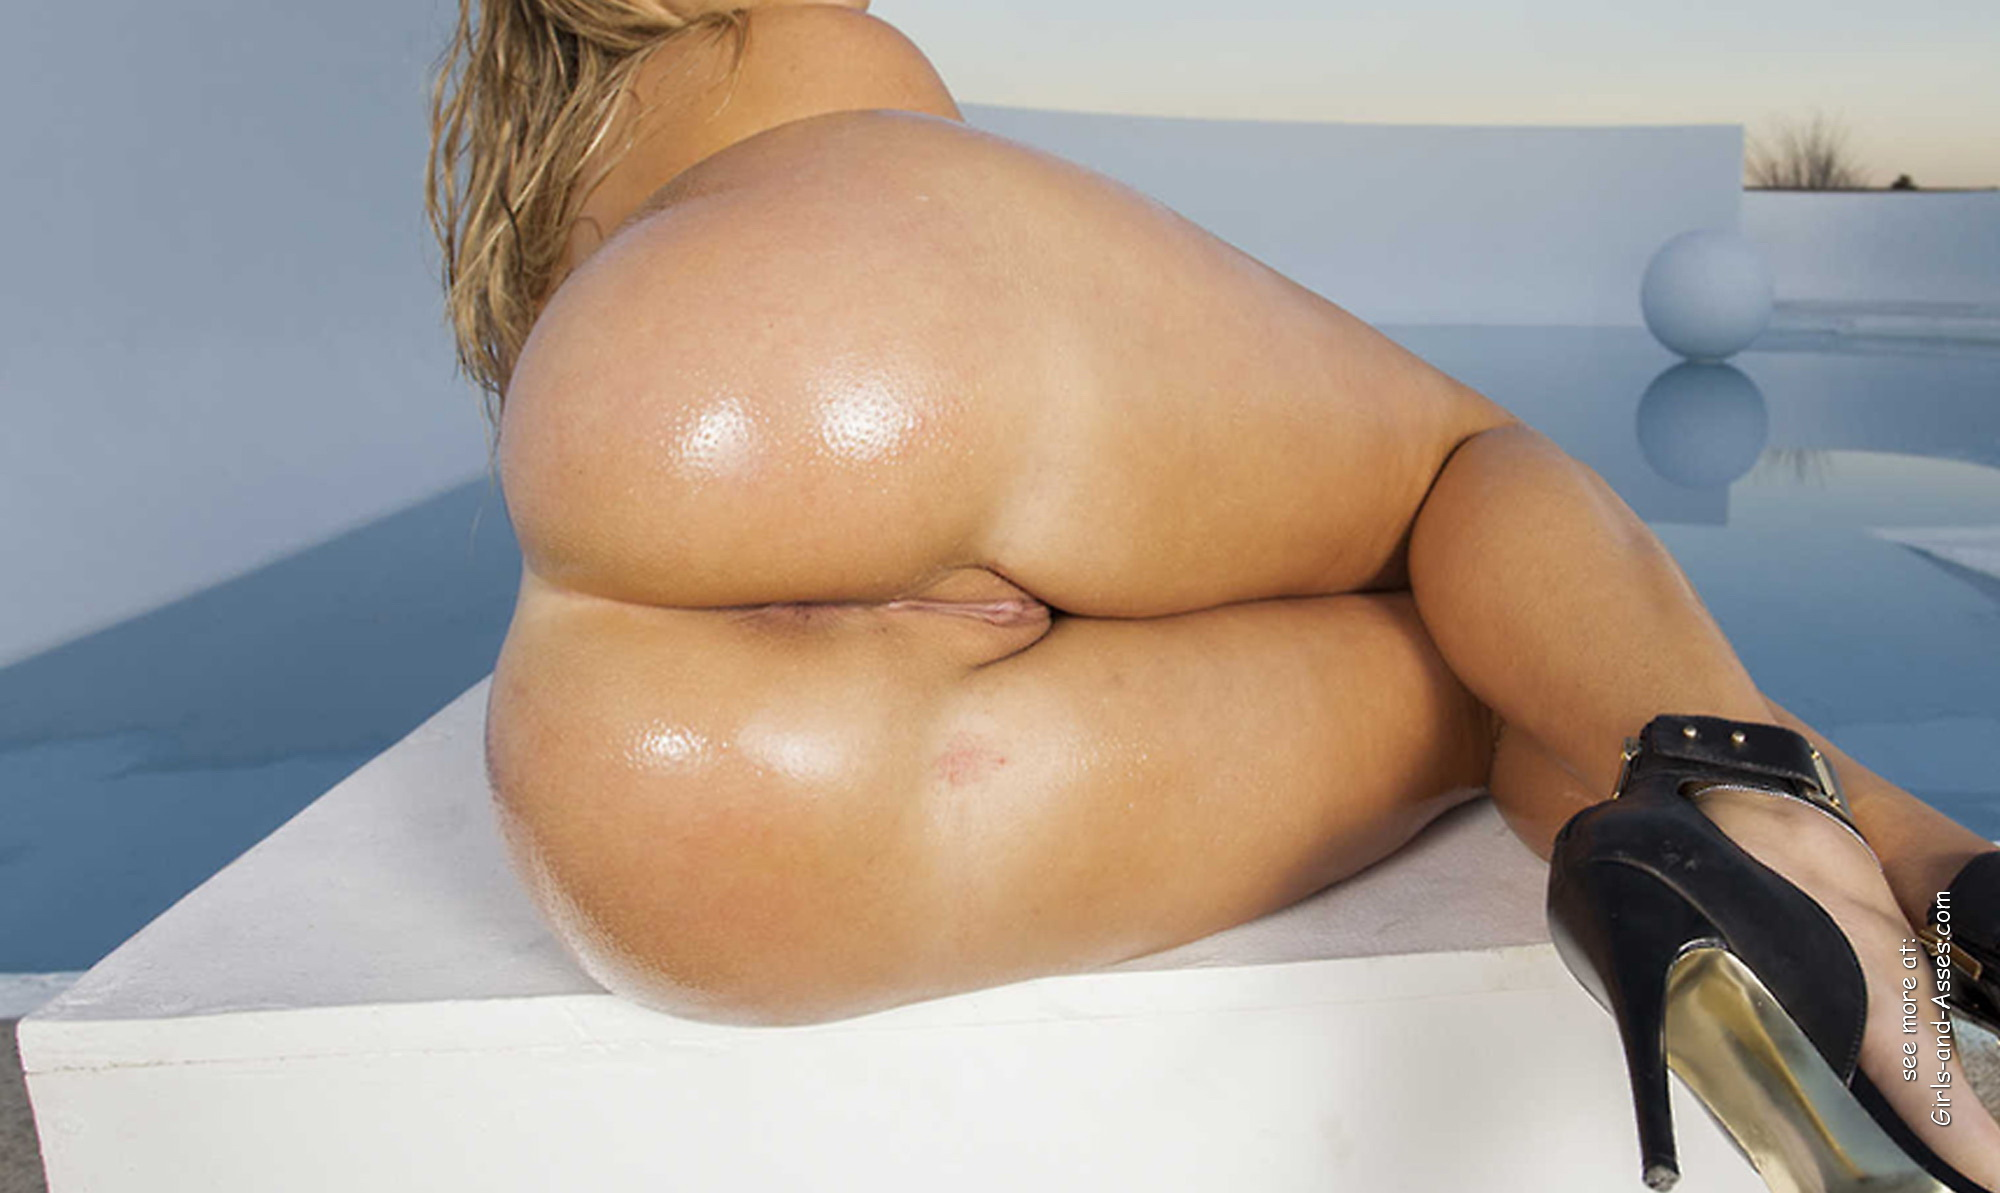 big thick naked booty by the pool picture 00925